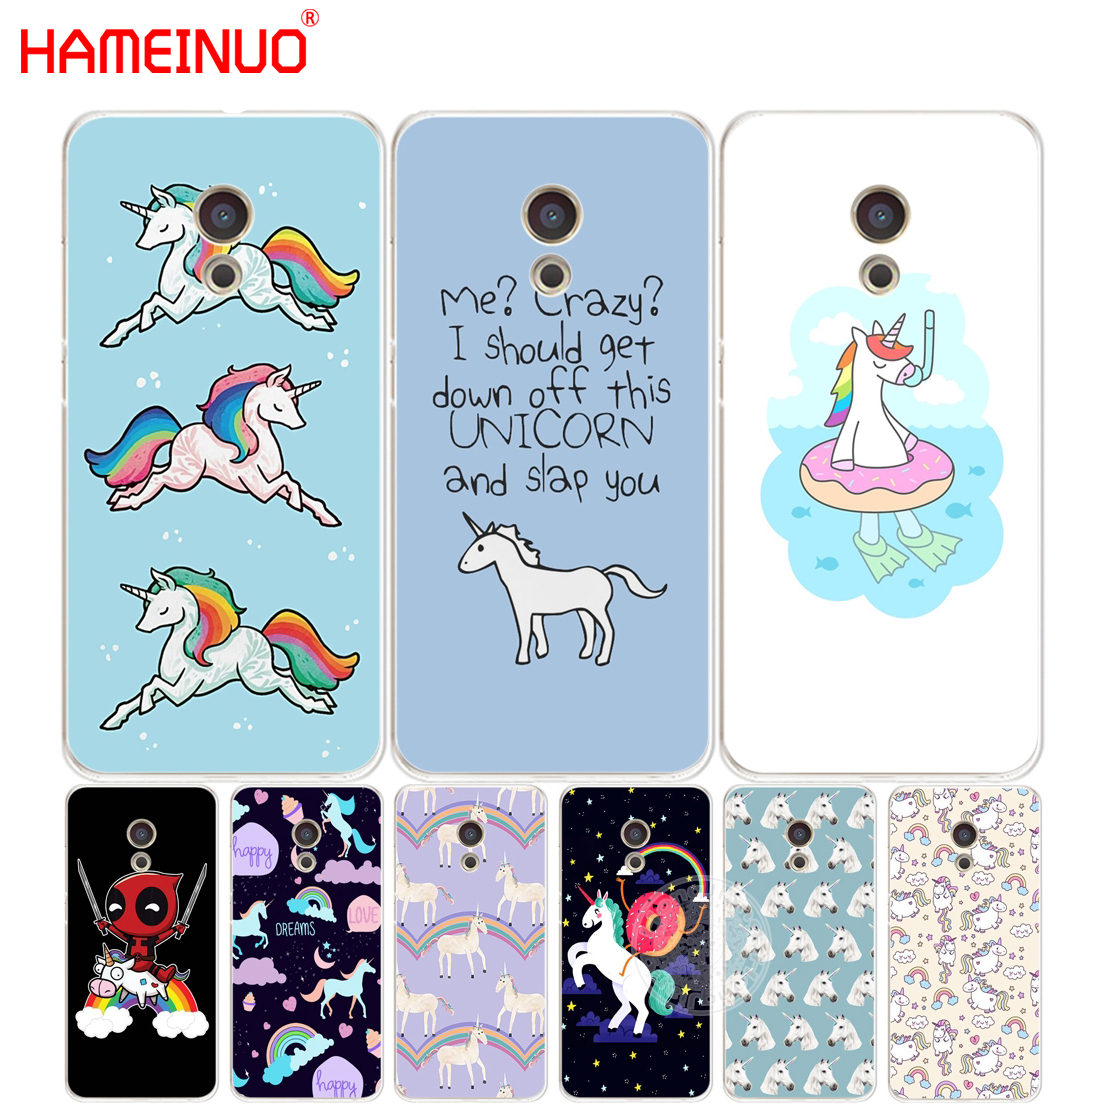 HAMEINUO unicorn horse Cover phone Case for Meizu M5 M5S M6 M2 M3 M3S MX4 MX5 MX6 PRO 6 5 U10 U20 note plus ...